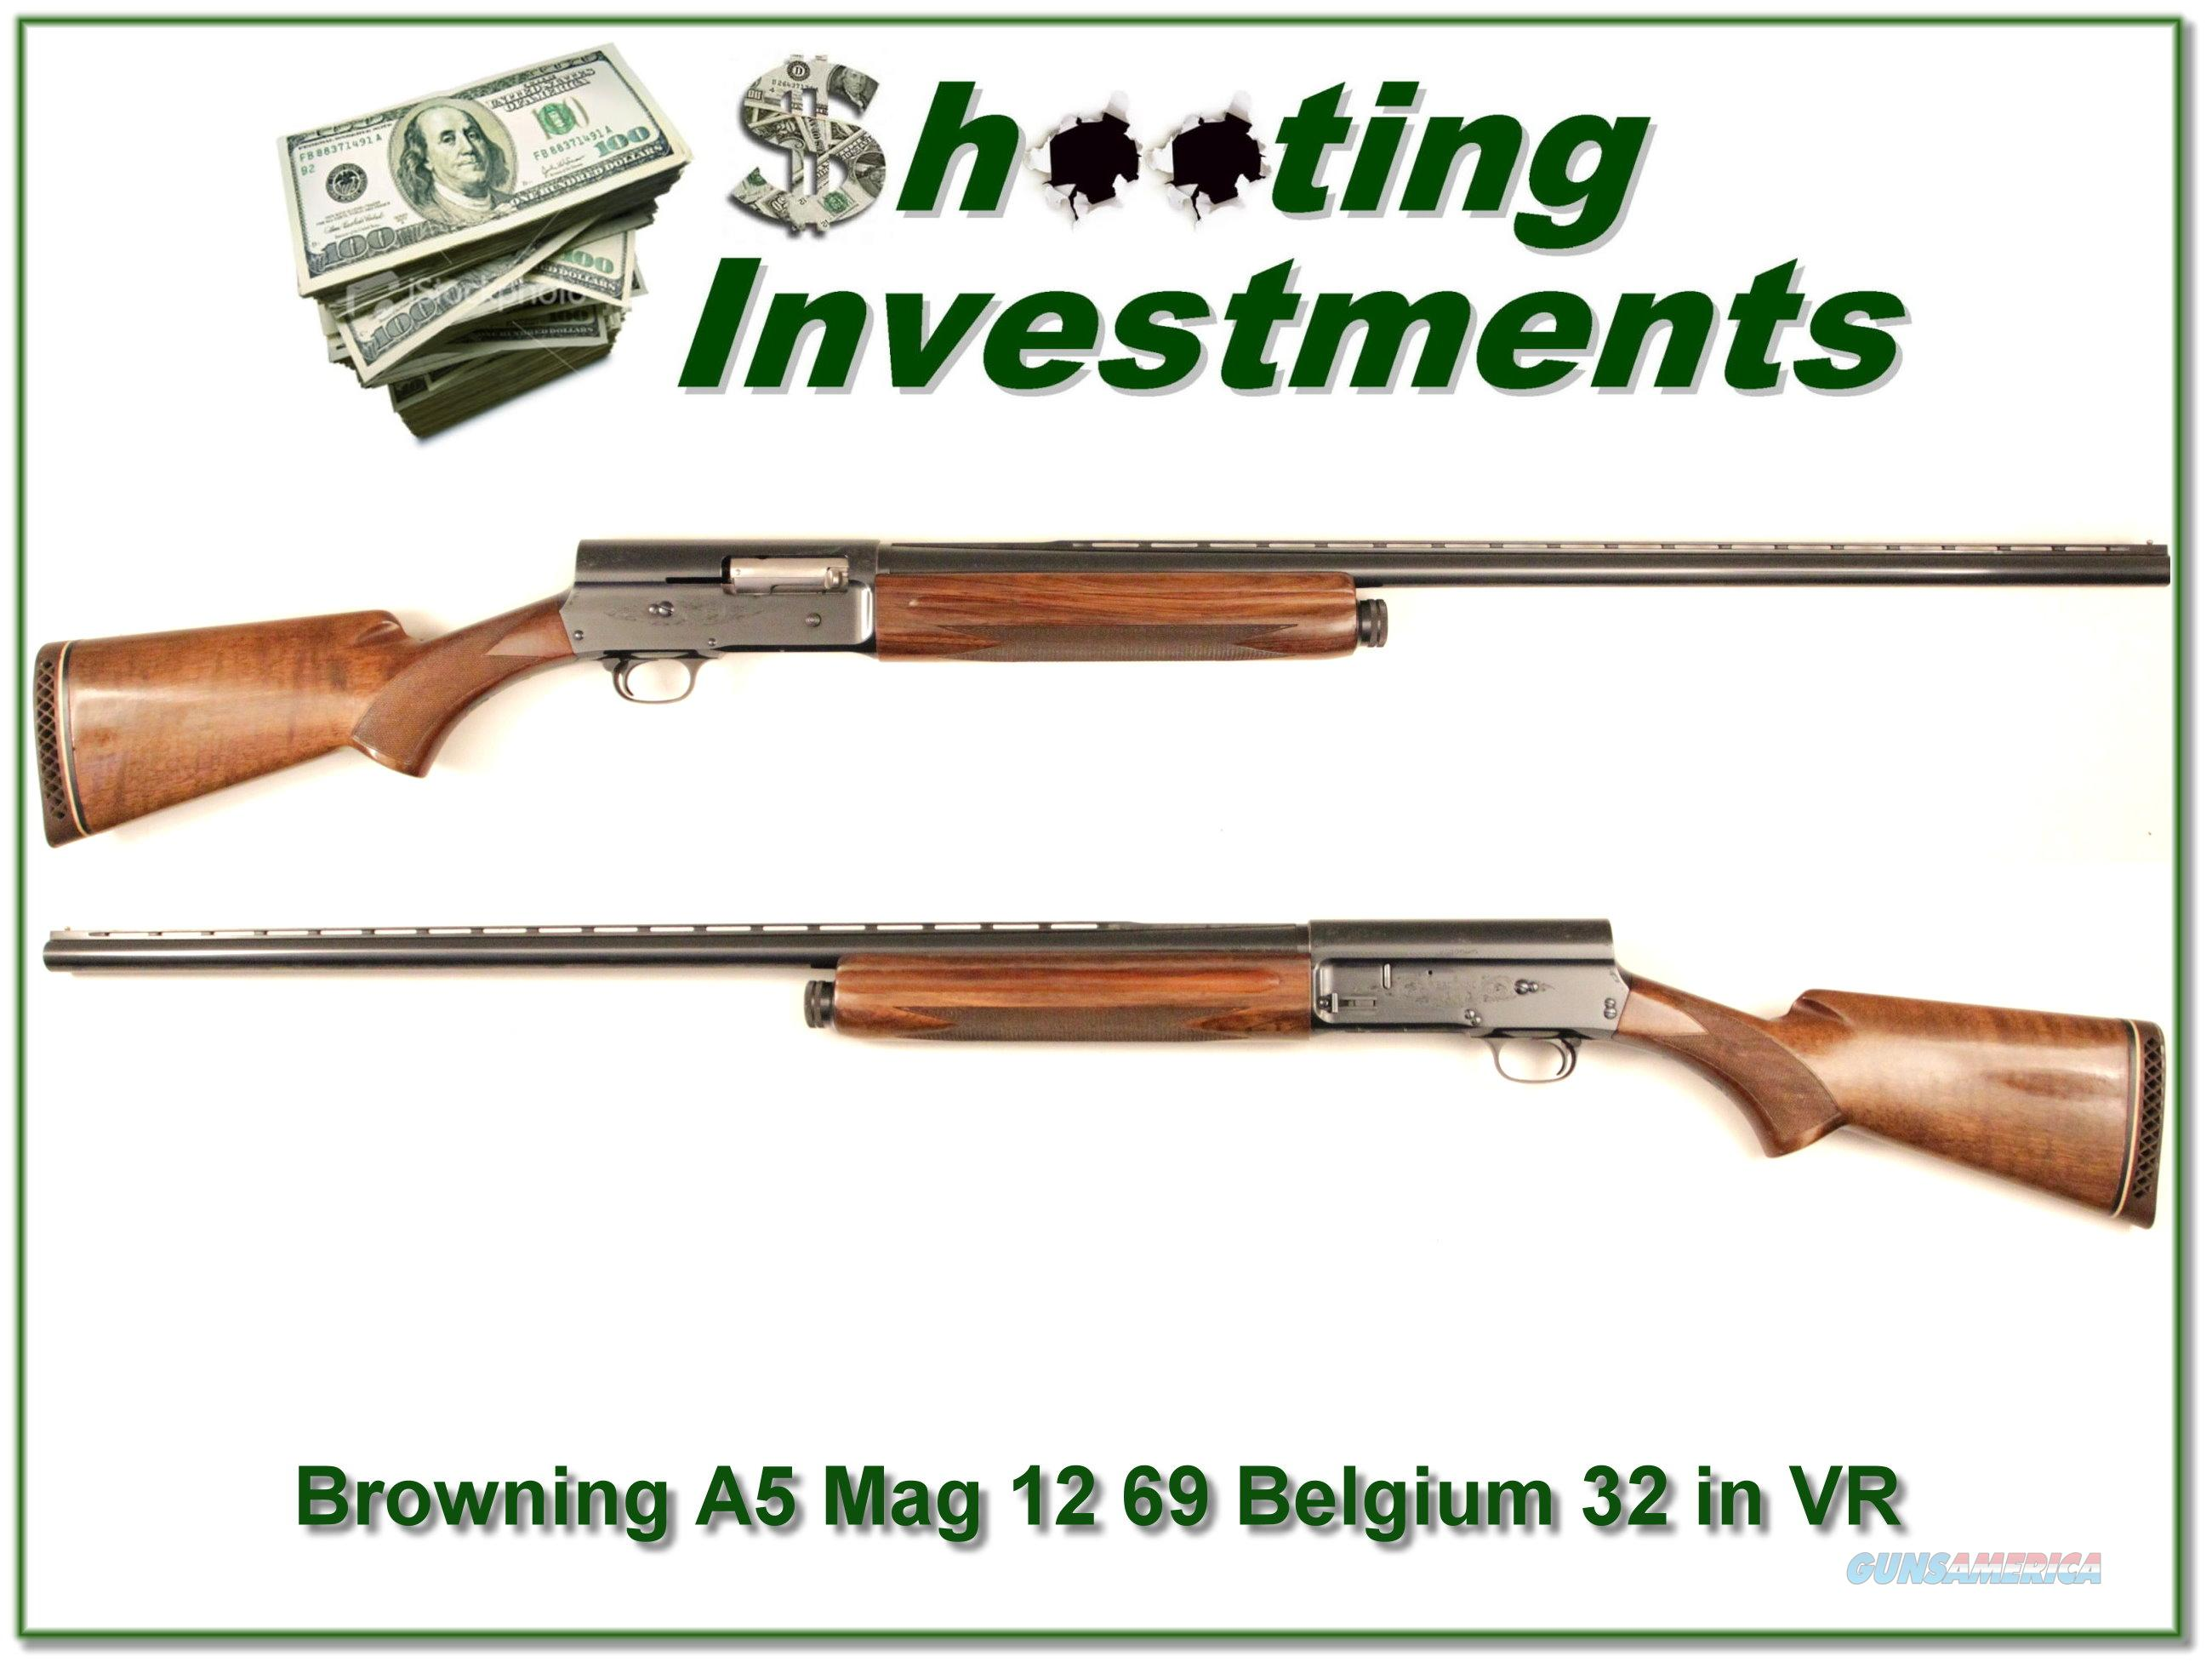 Browning A5 12 Magnum 69 Belgium 32in VR  Guns > Shotguns > Browning Shotguns > Autoloaders > Hunting